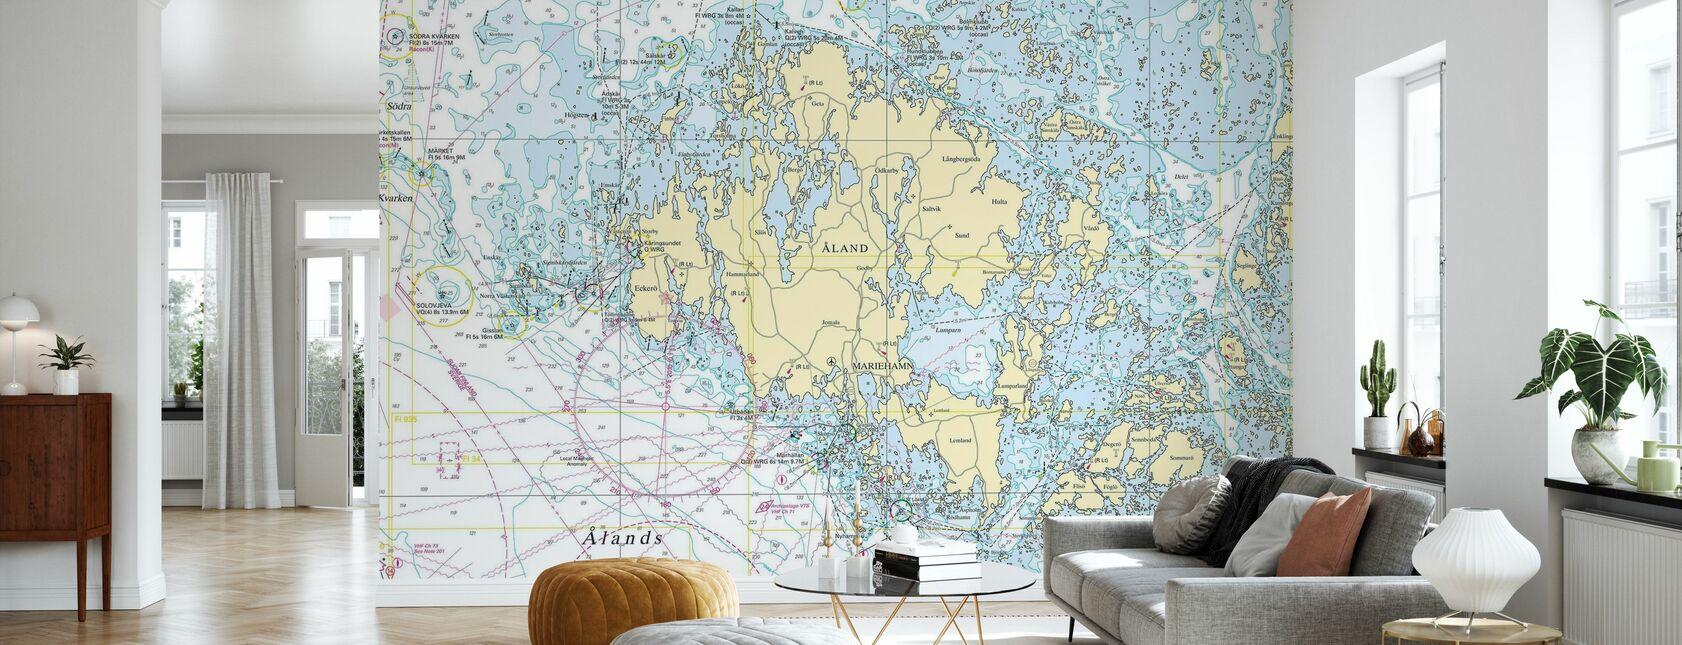 Aland Archipelago - Wallpaper - Living Room